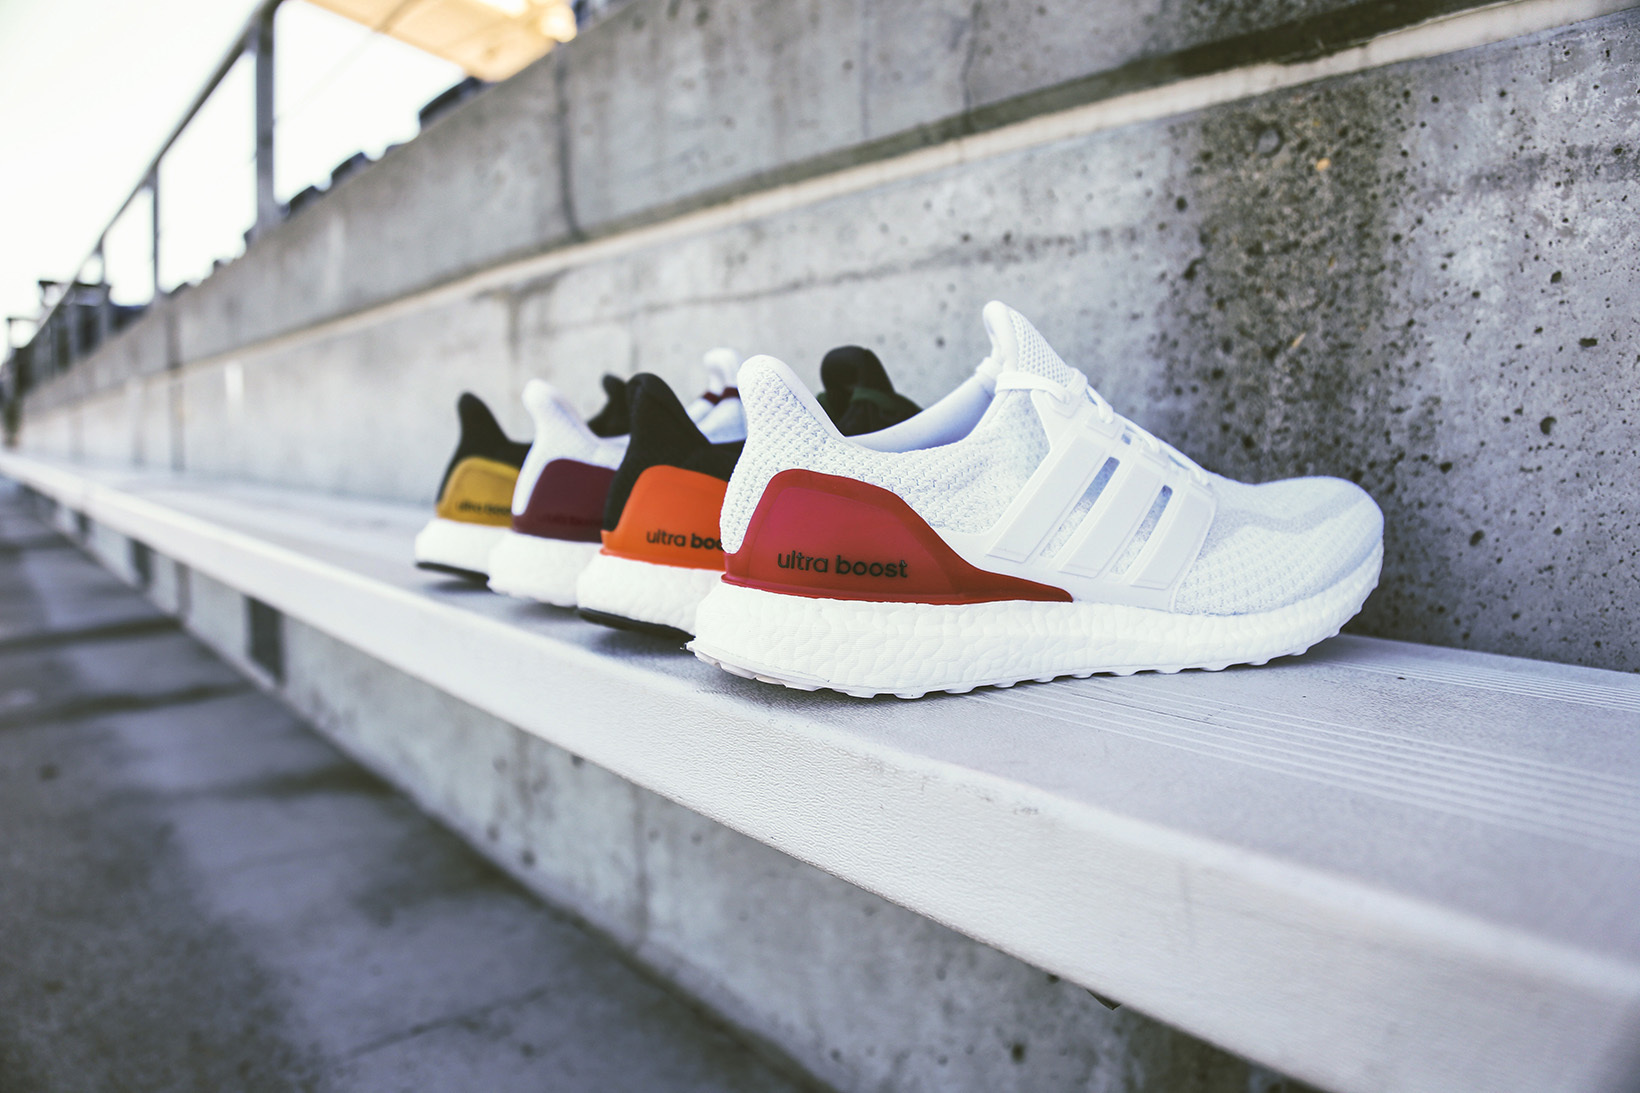 New NCAA colourways for Adidas UltraBoost